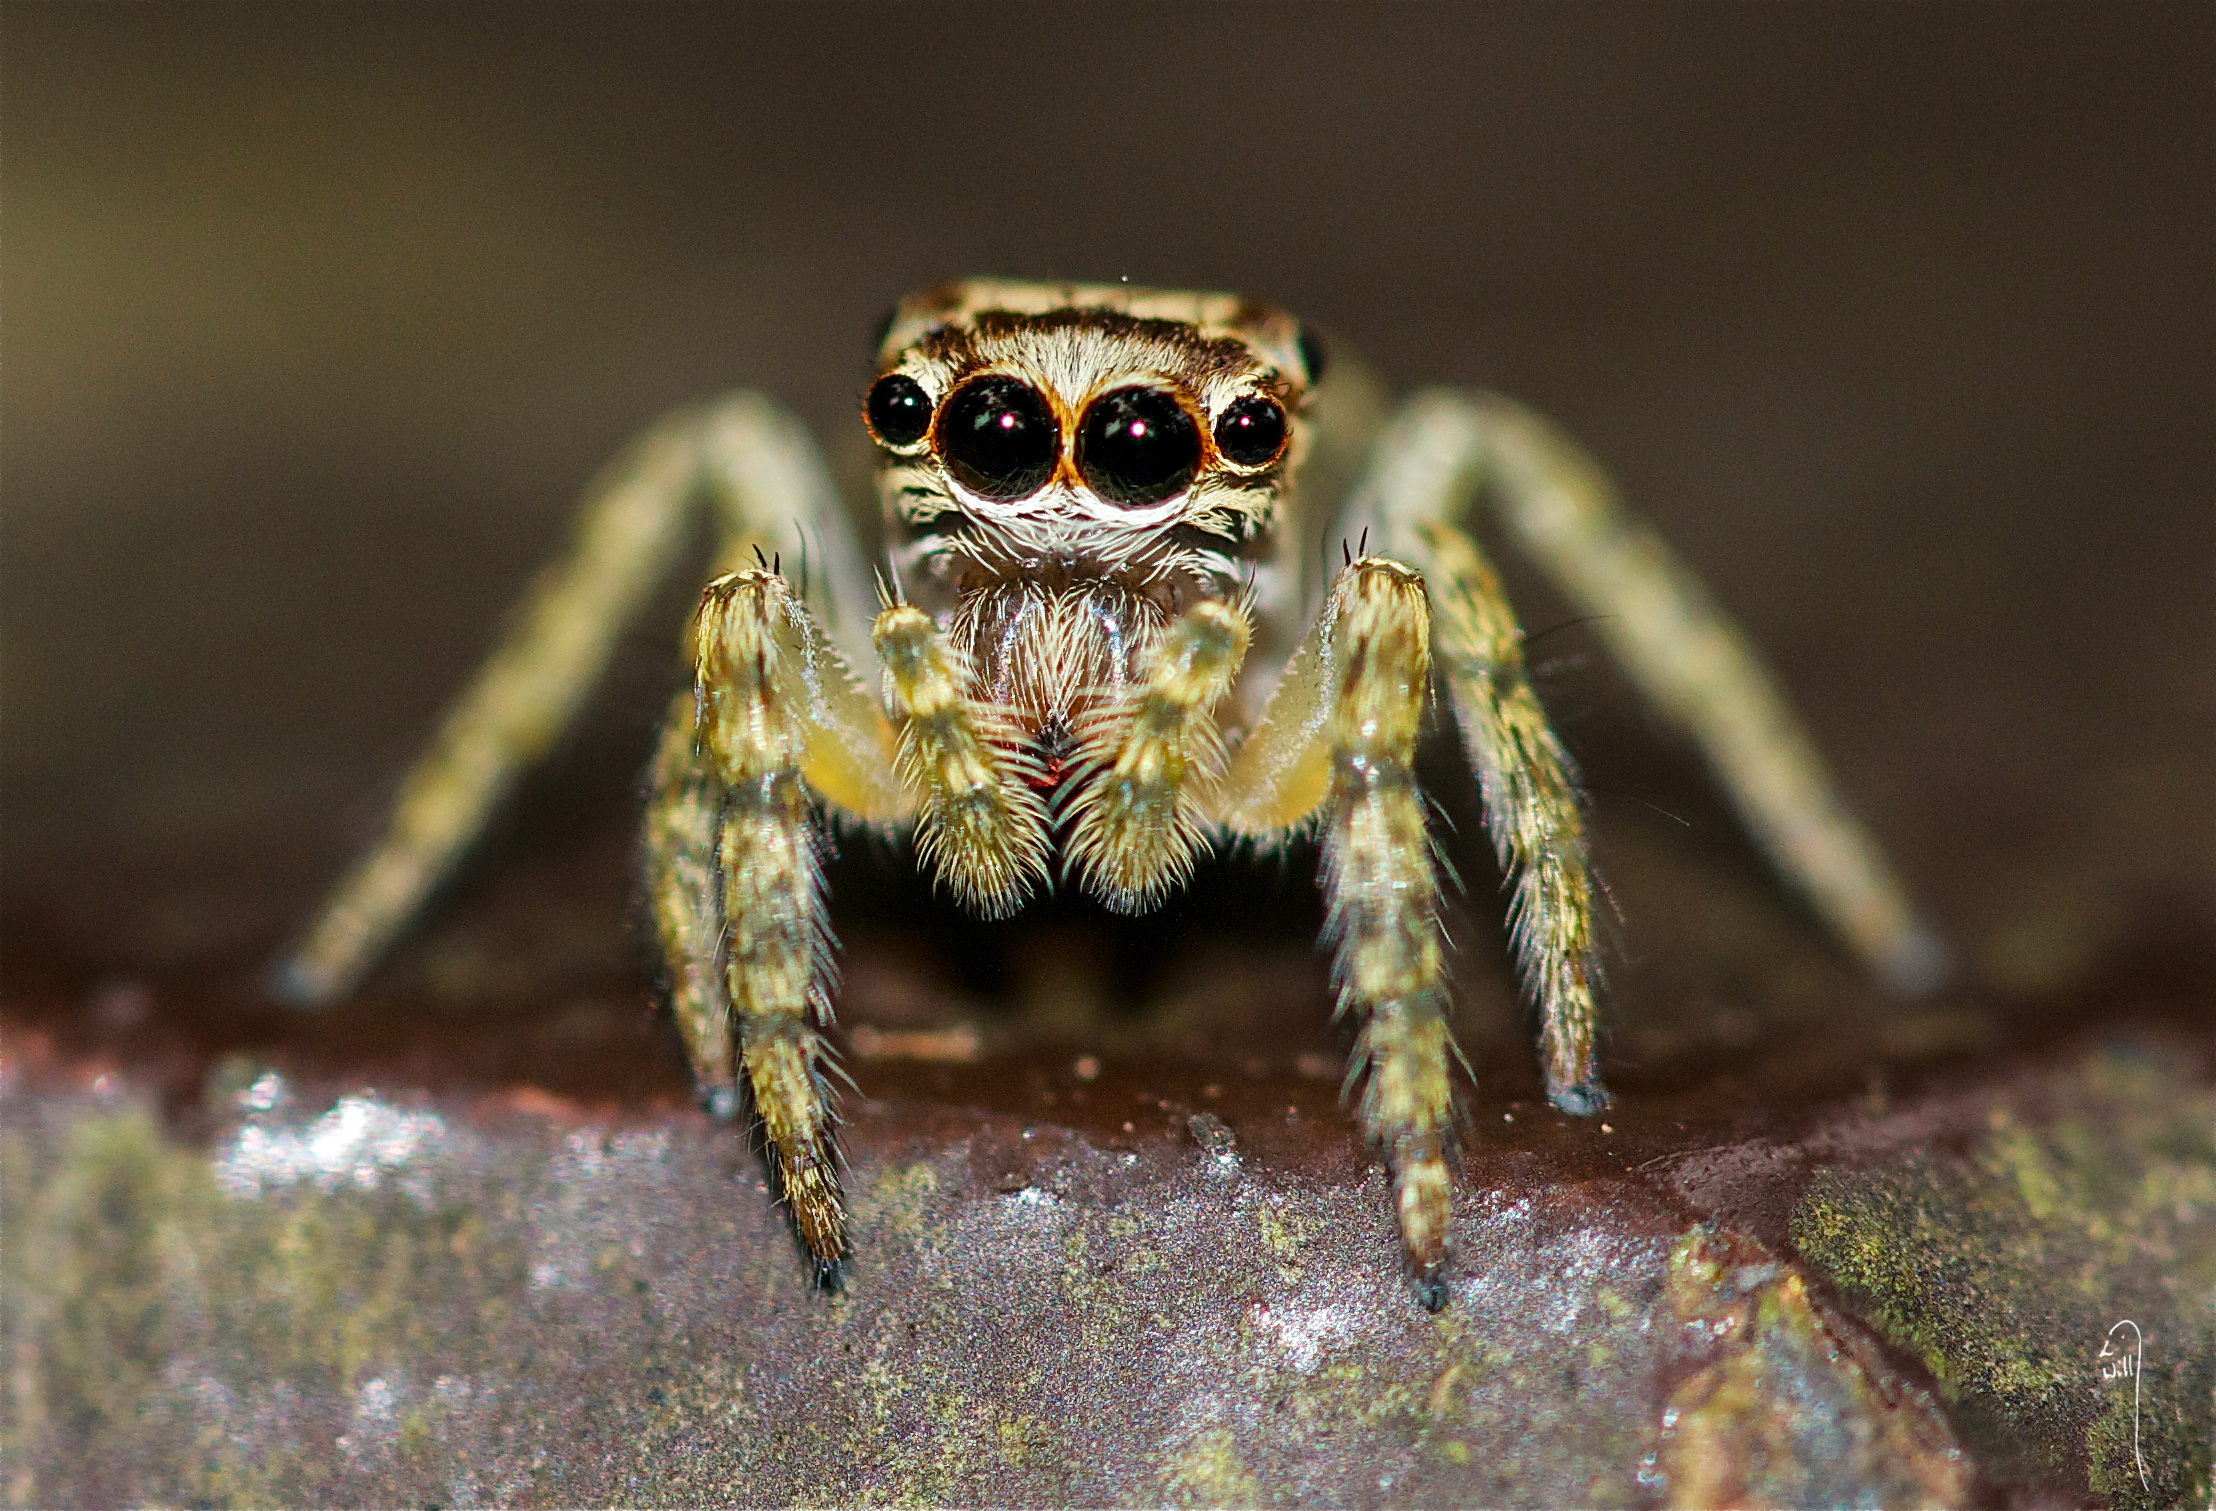 Bornean Jumping Spider